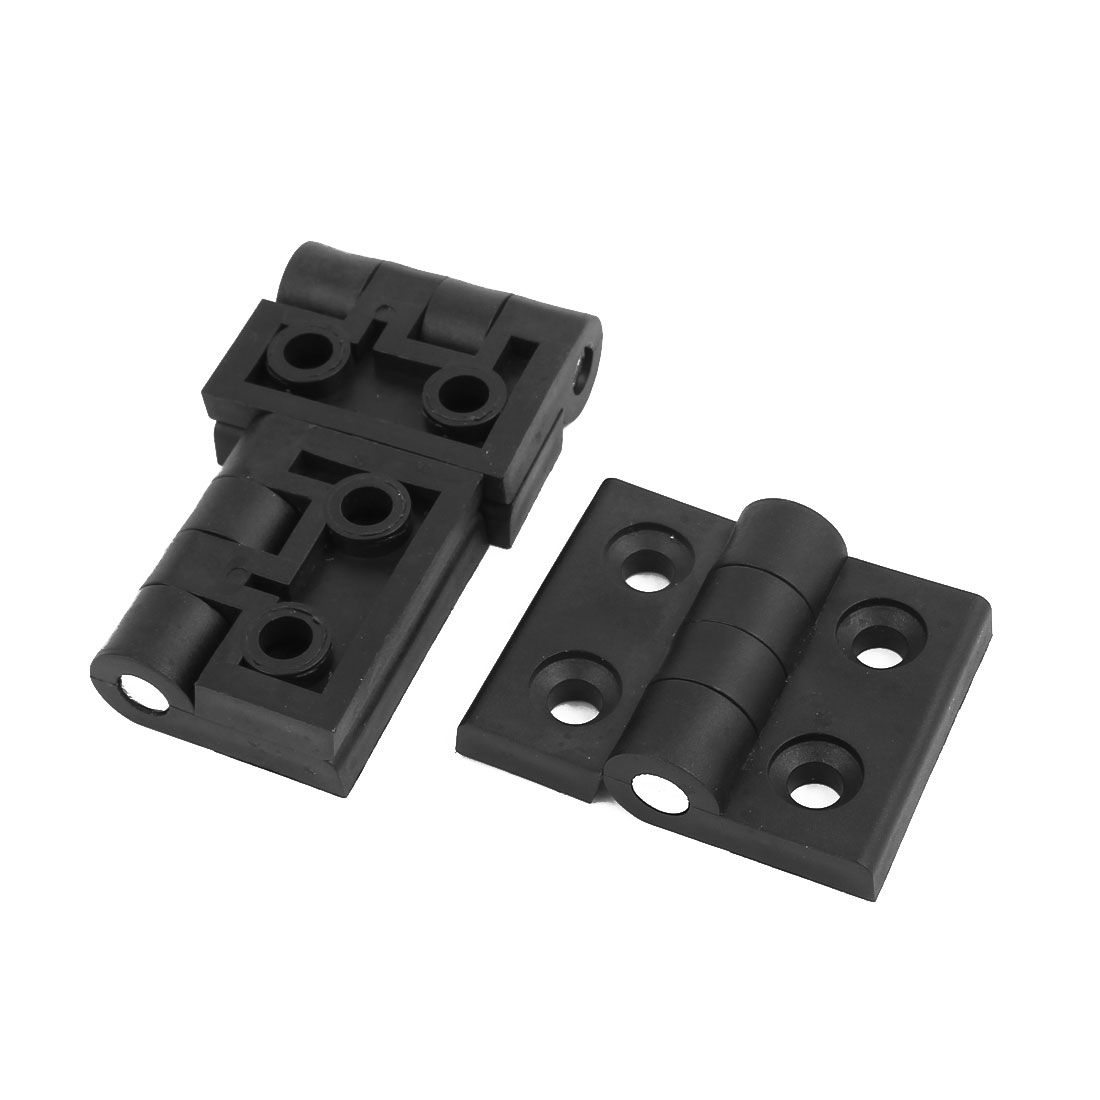 57mm x 45mm Plastic Foldable Flap Hinge Black 3pcs for Home Door